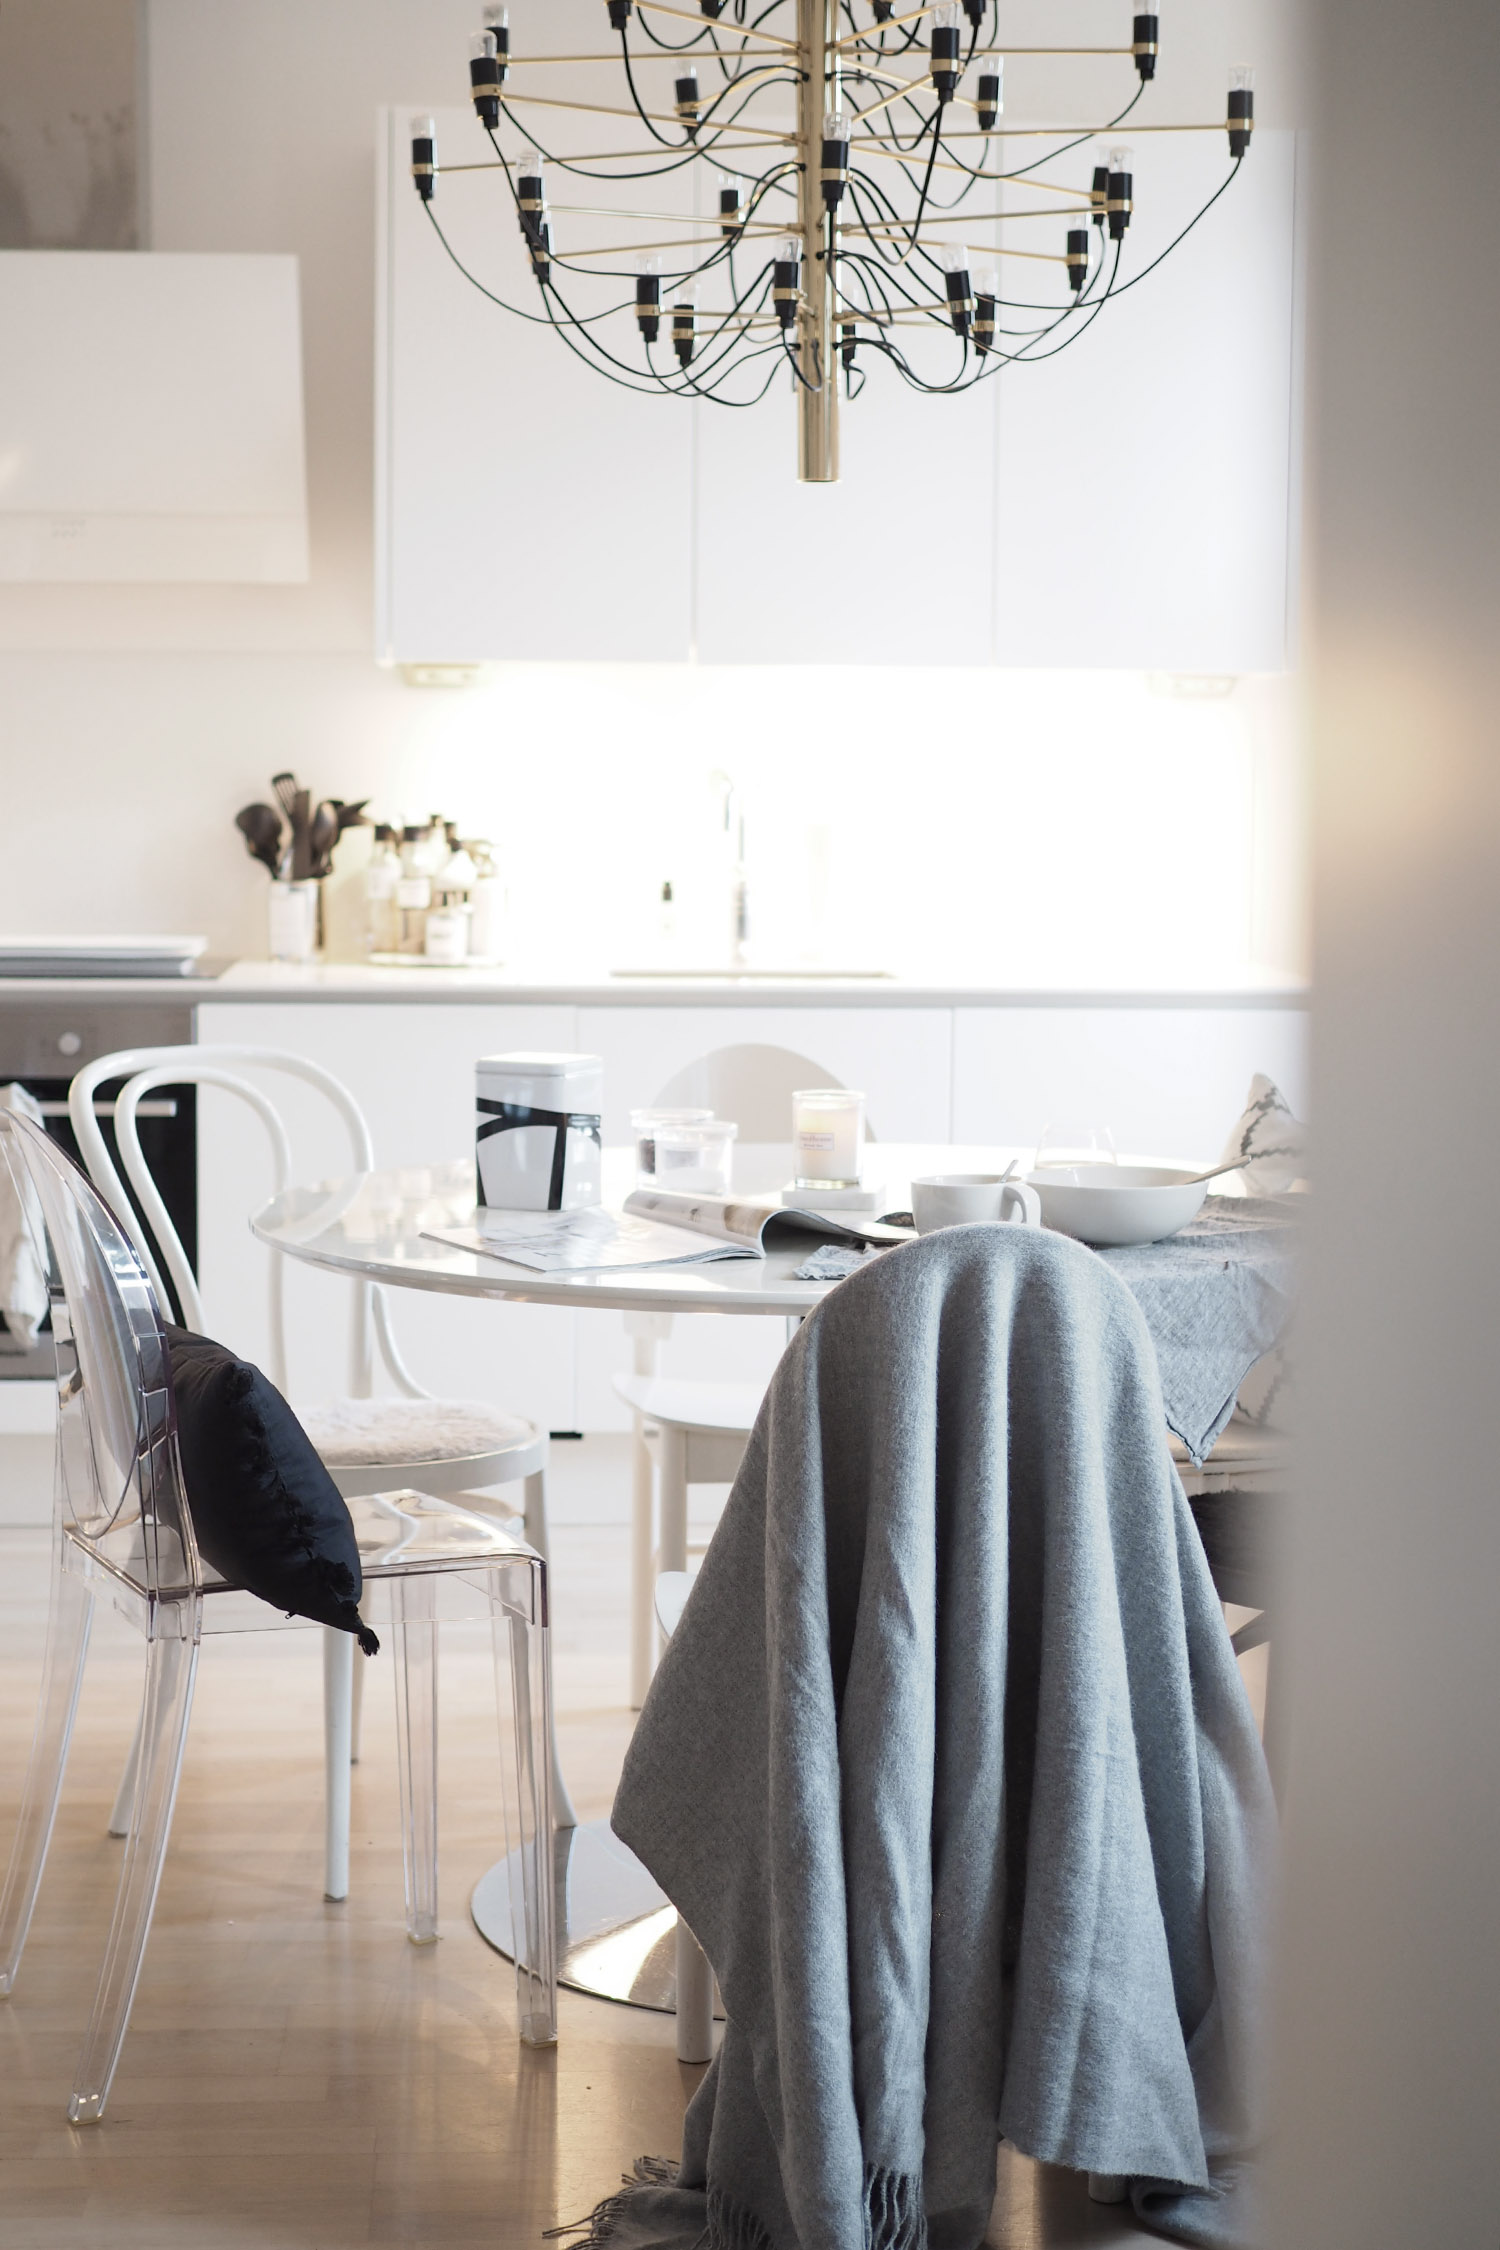 C and the city - Dining table and kitchen ready for breakfast - see more pics on the blog: http://www.idealista.fi/charandthecity/2016/11/21/ruokailutilan-talvikuteet #candthecity #interior #kitchen #tablesetting #breakfast #balmuir #flos